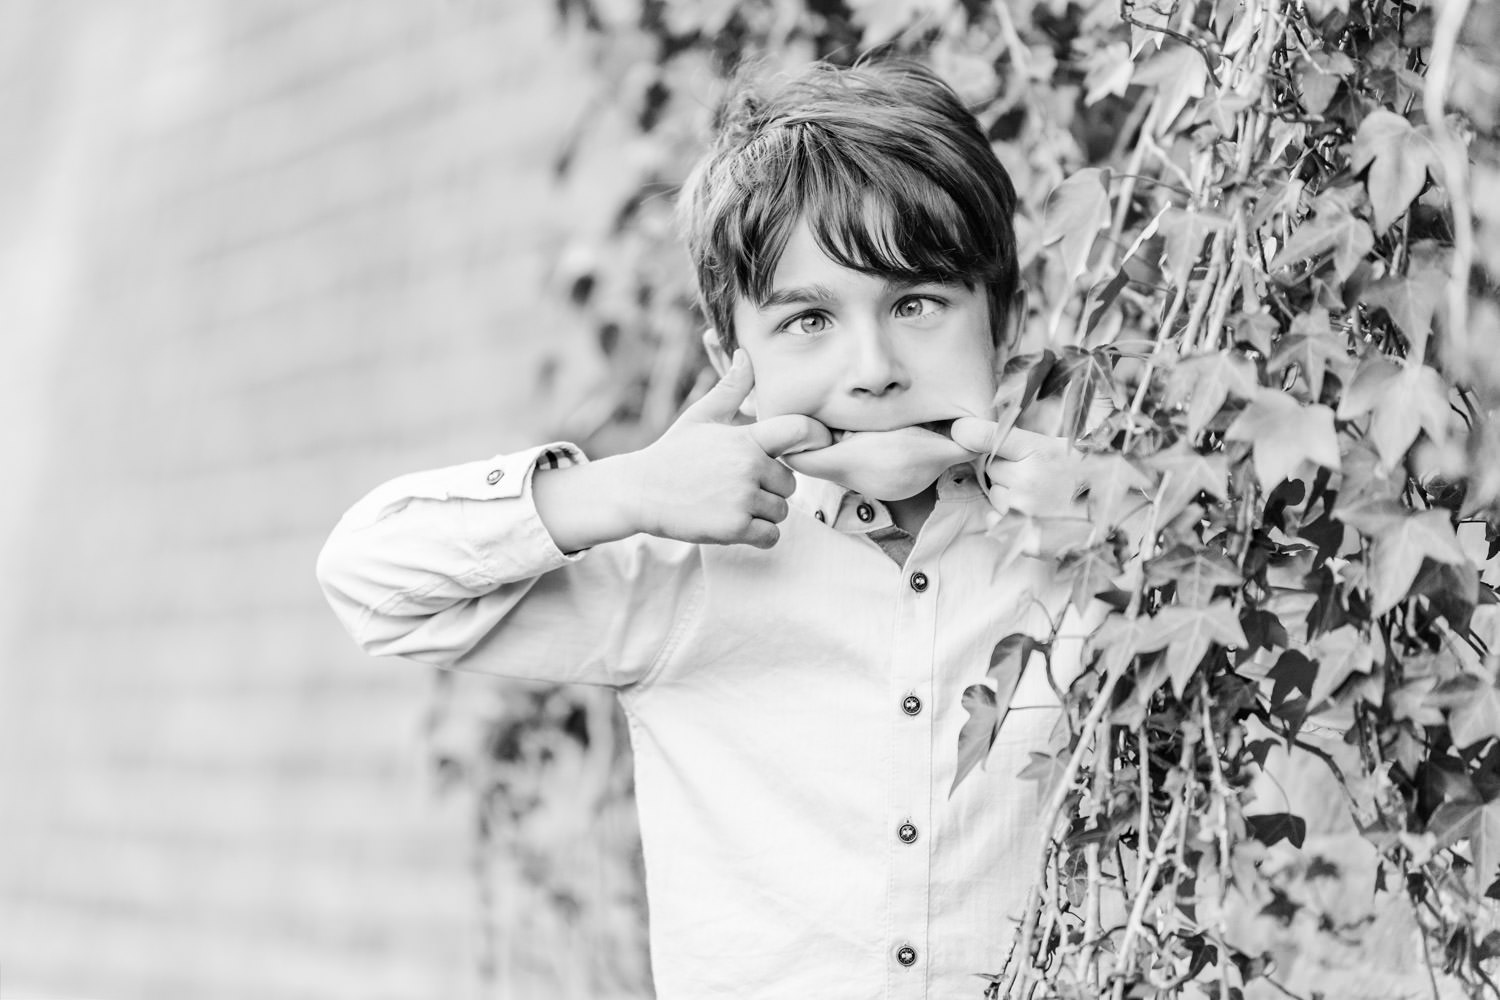 Boy pulling funny face at the camera during family photo shoot